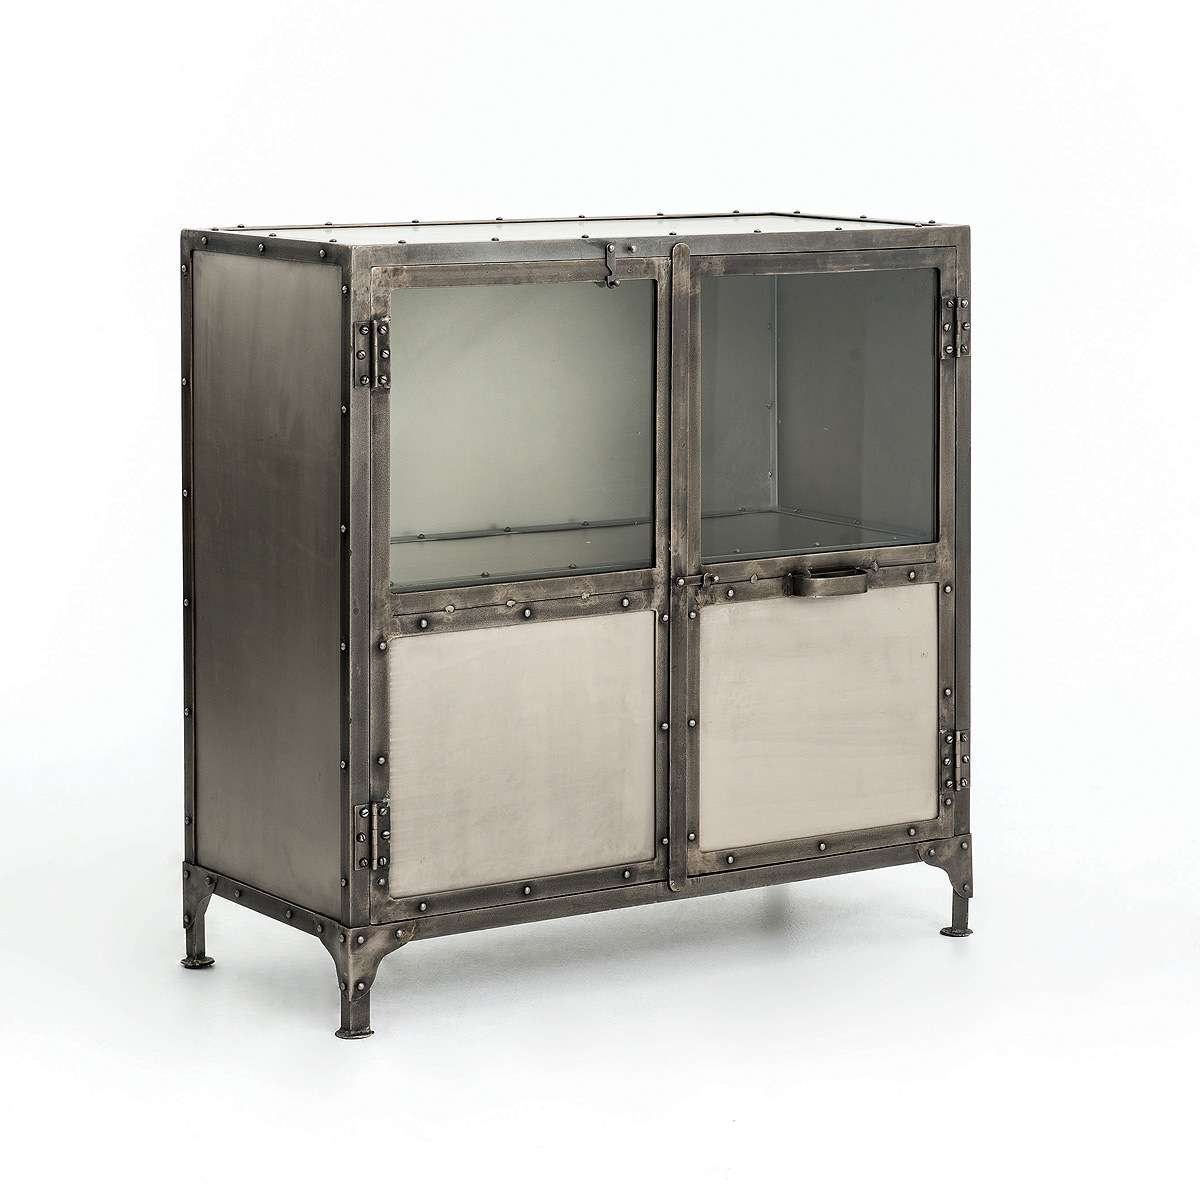 This Undeniably Charming Sideboard Makes A Beautiful Addition To Throughout Industrial Sideboards (View 11 of 20)